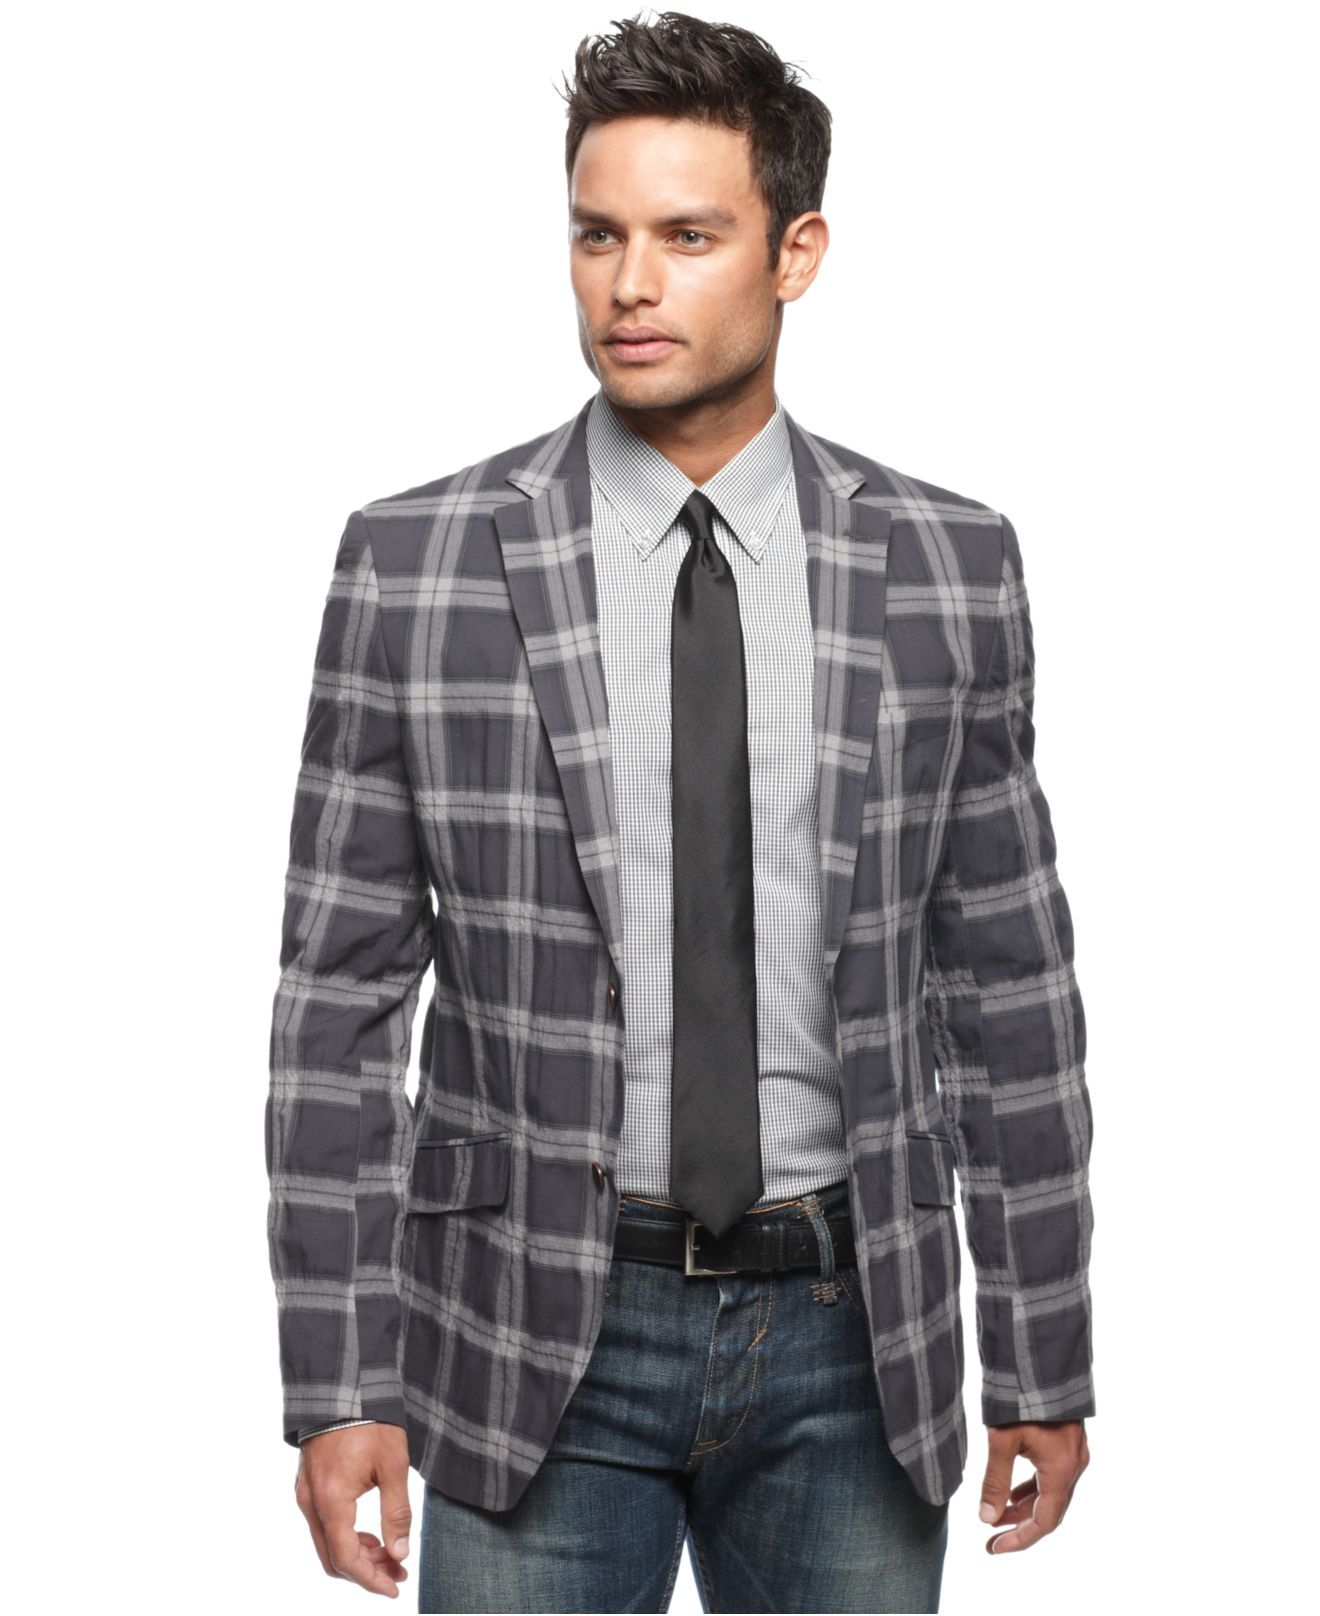 Blazers Jackets Mens: Tallia Orange Jacket, Large Check Slim Fit Blazer